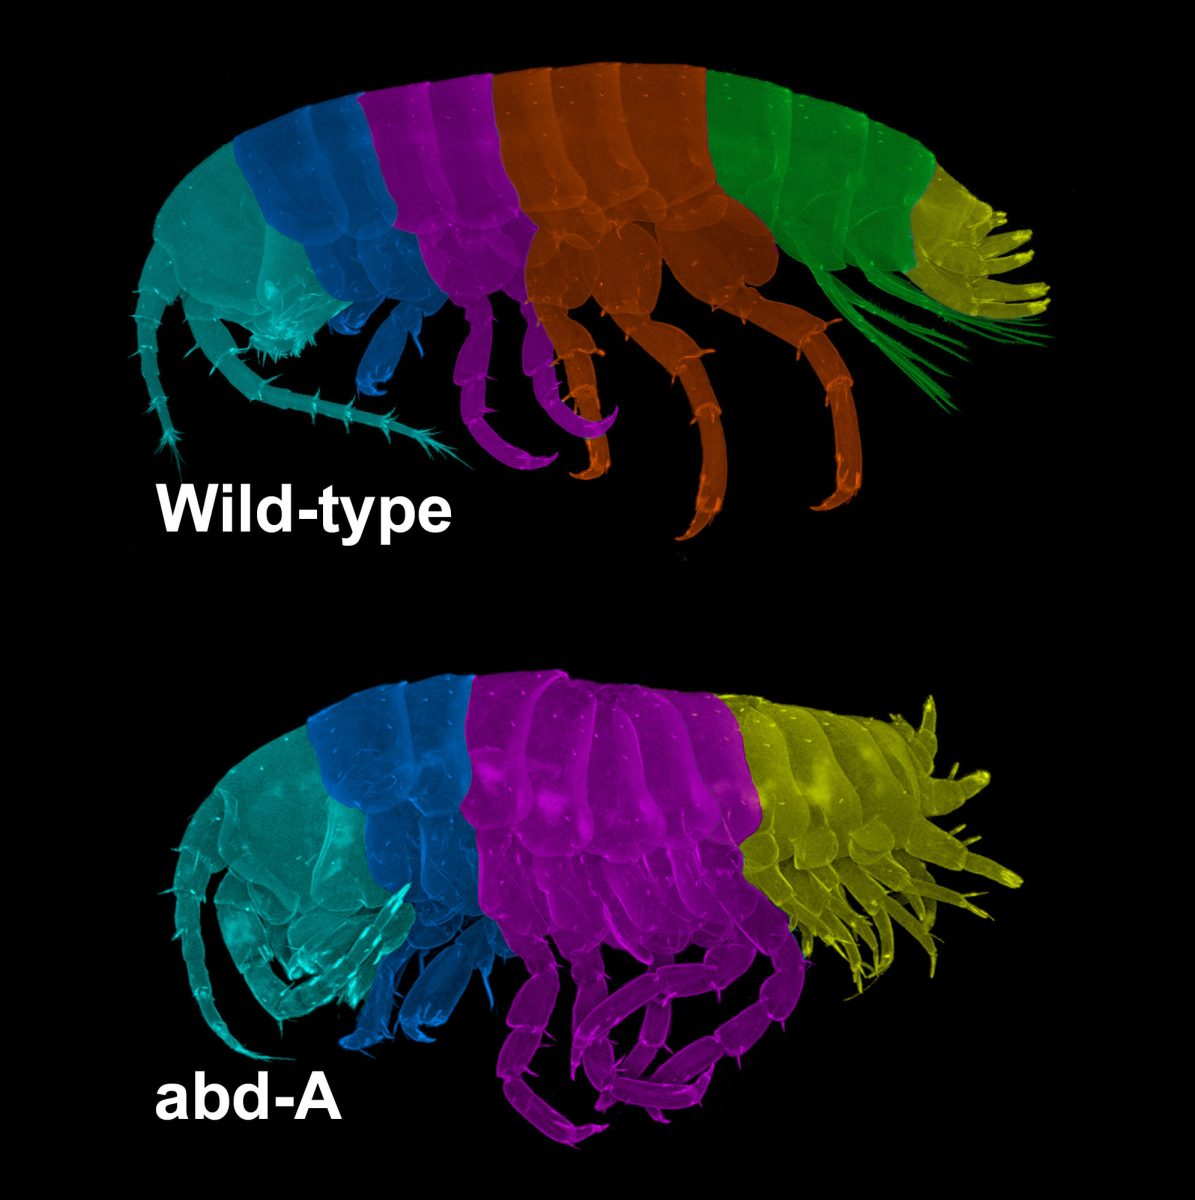 Segmentation in an Arthropod